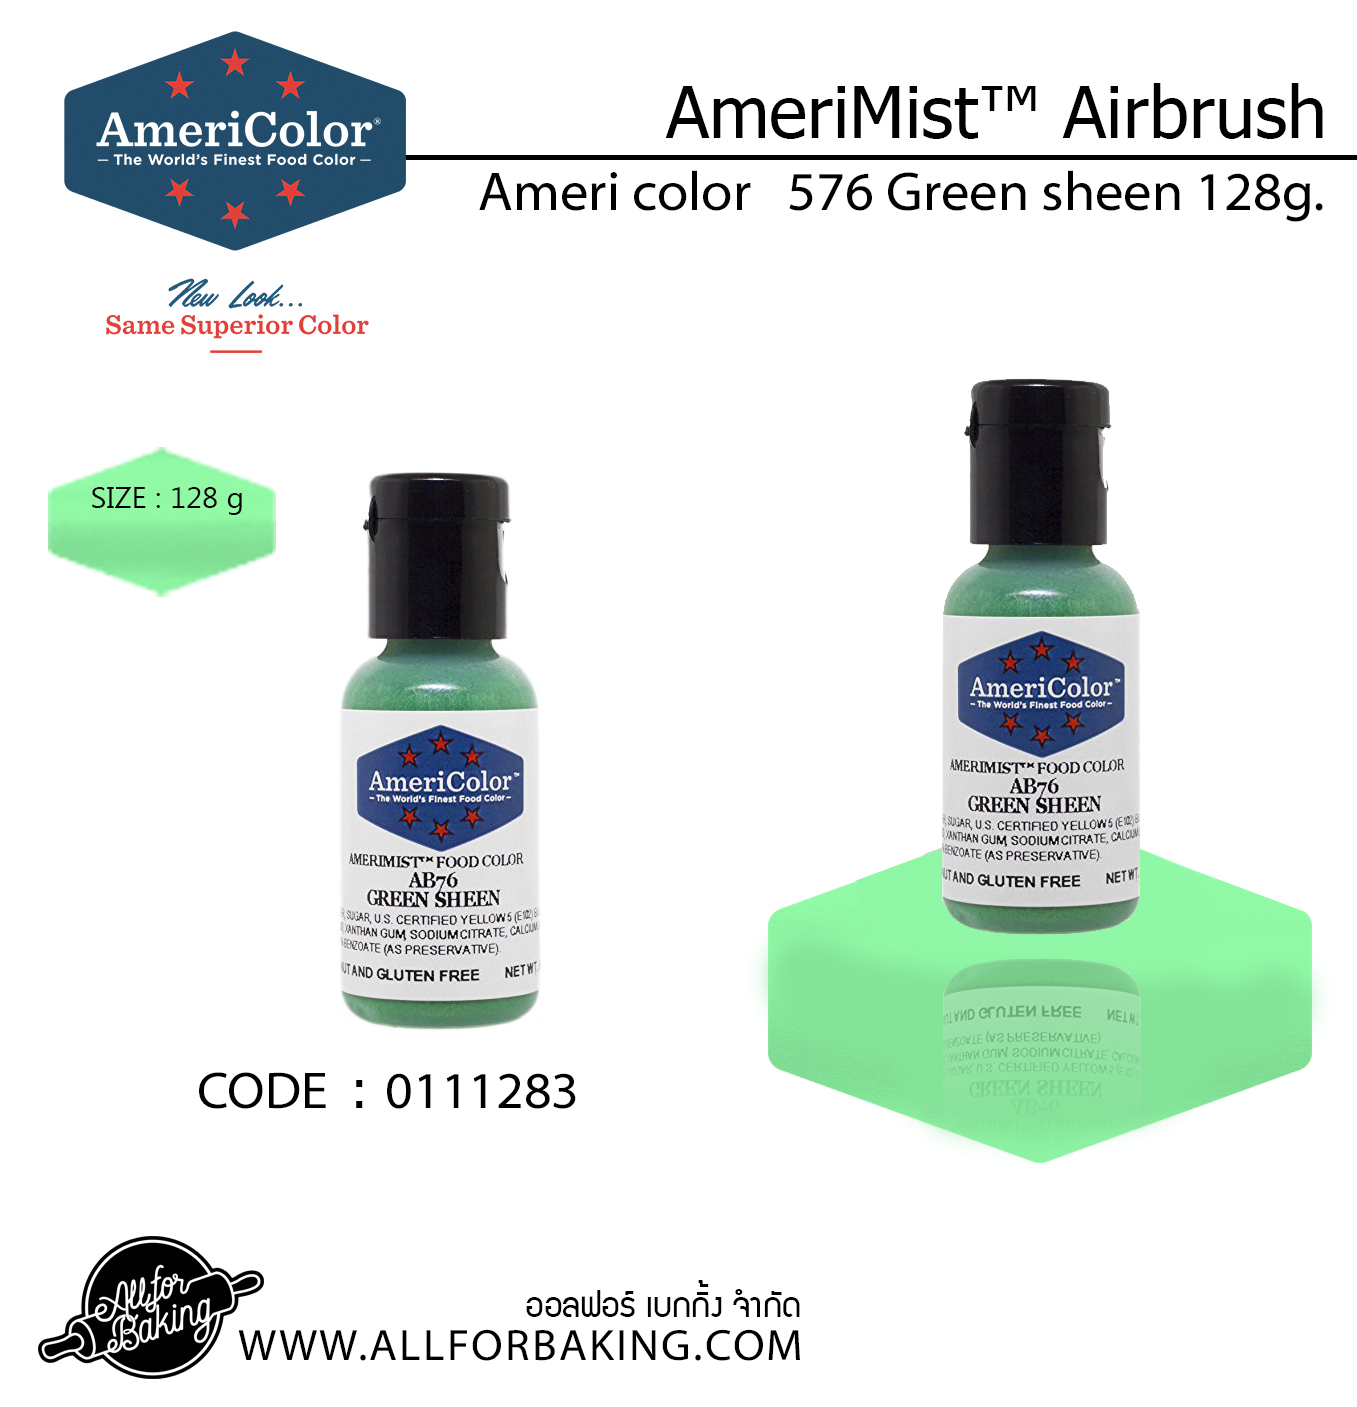 Ameri color 576 Green sheen 128g. (128 g)